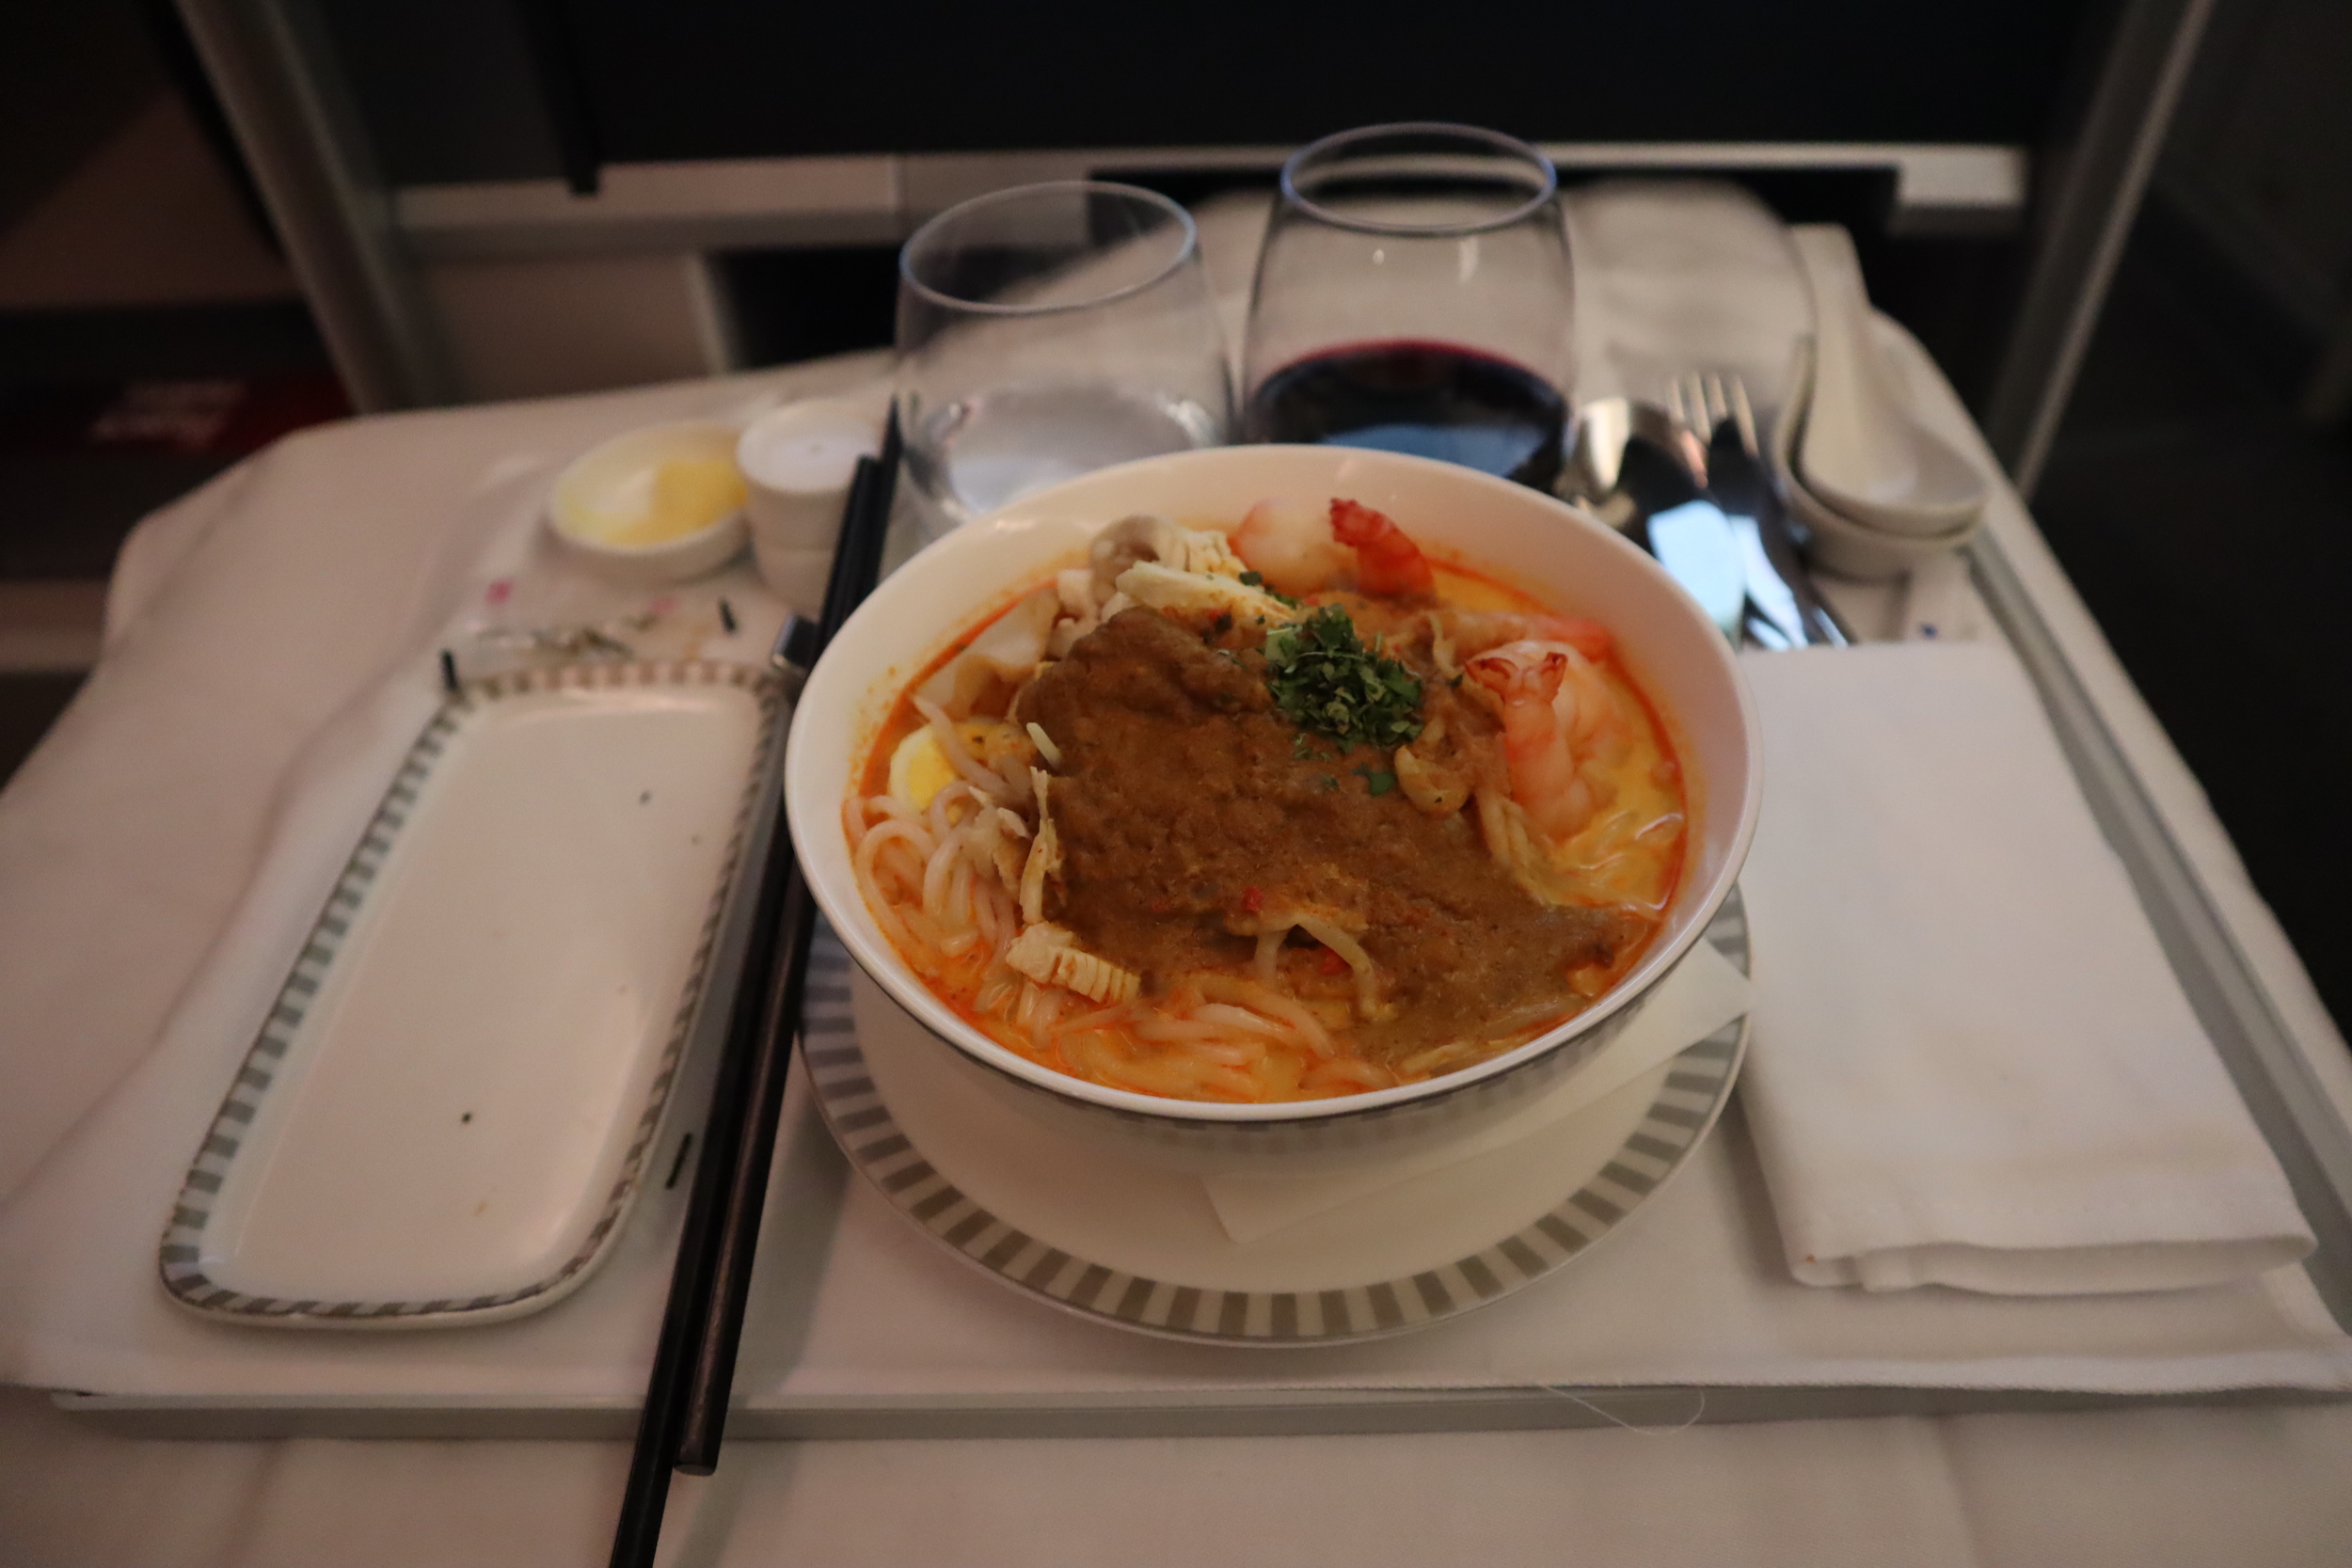 Singapore Airlines 787-10 business class – Chicken and prawn laksa